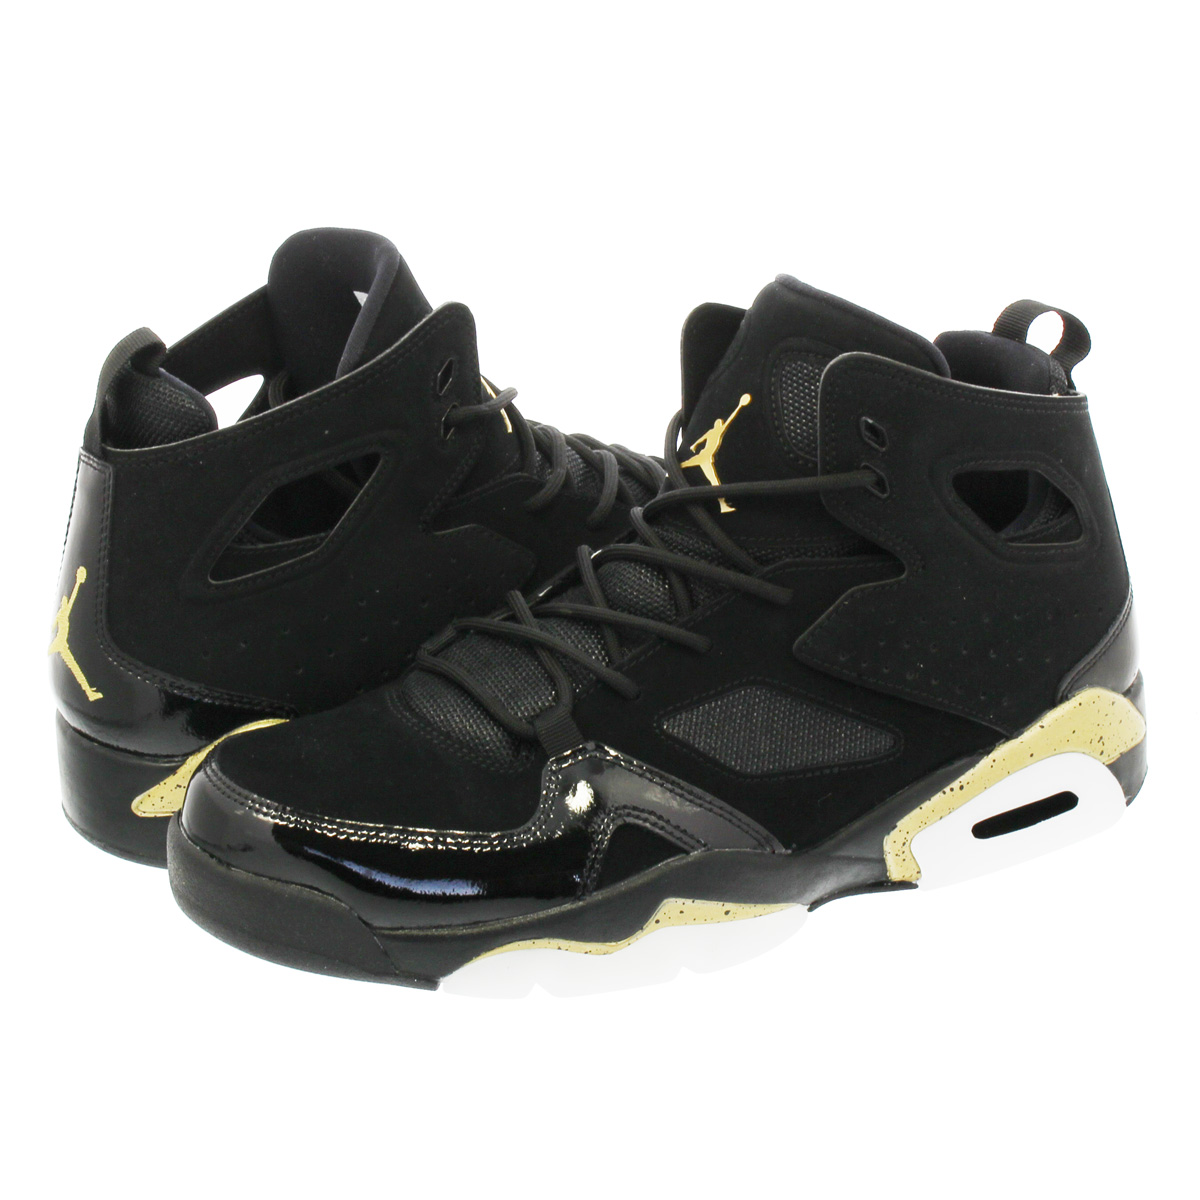 jordan flight club 91 shoes nz